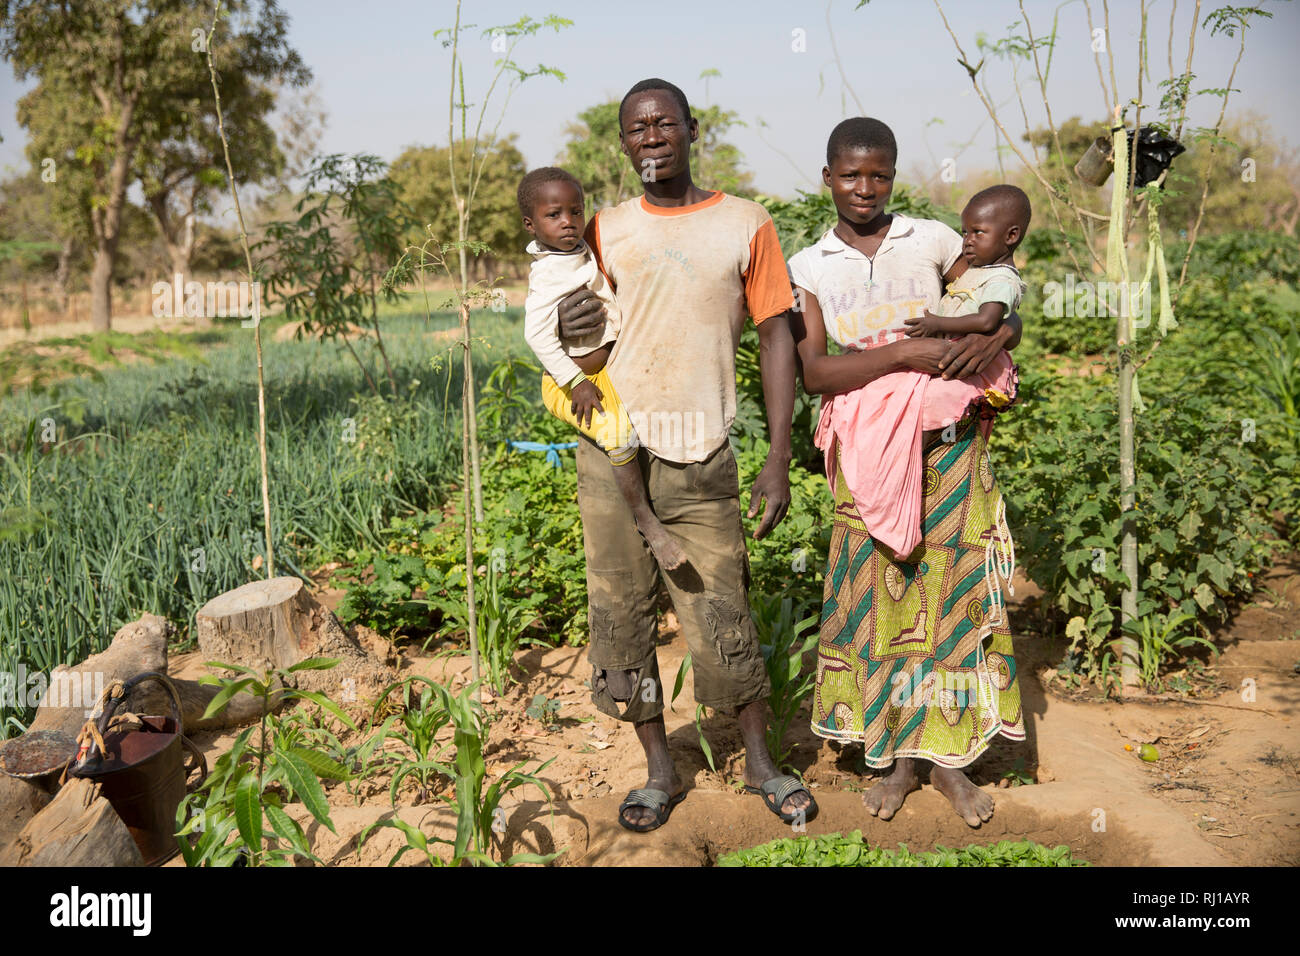 Samba village, Yako Province, Burkina Faso: Denis Zoundi, 45, with his wife Collette Guiguemde, 26, their  baby Ornela Divine Zoundi, 18 months, and  four-year-old daughter Eulalie Zondi at his market garden. - Stock Image